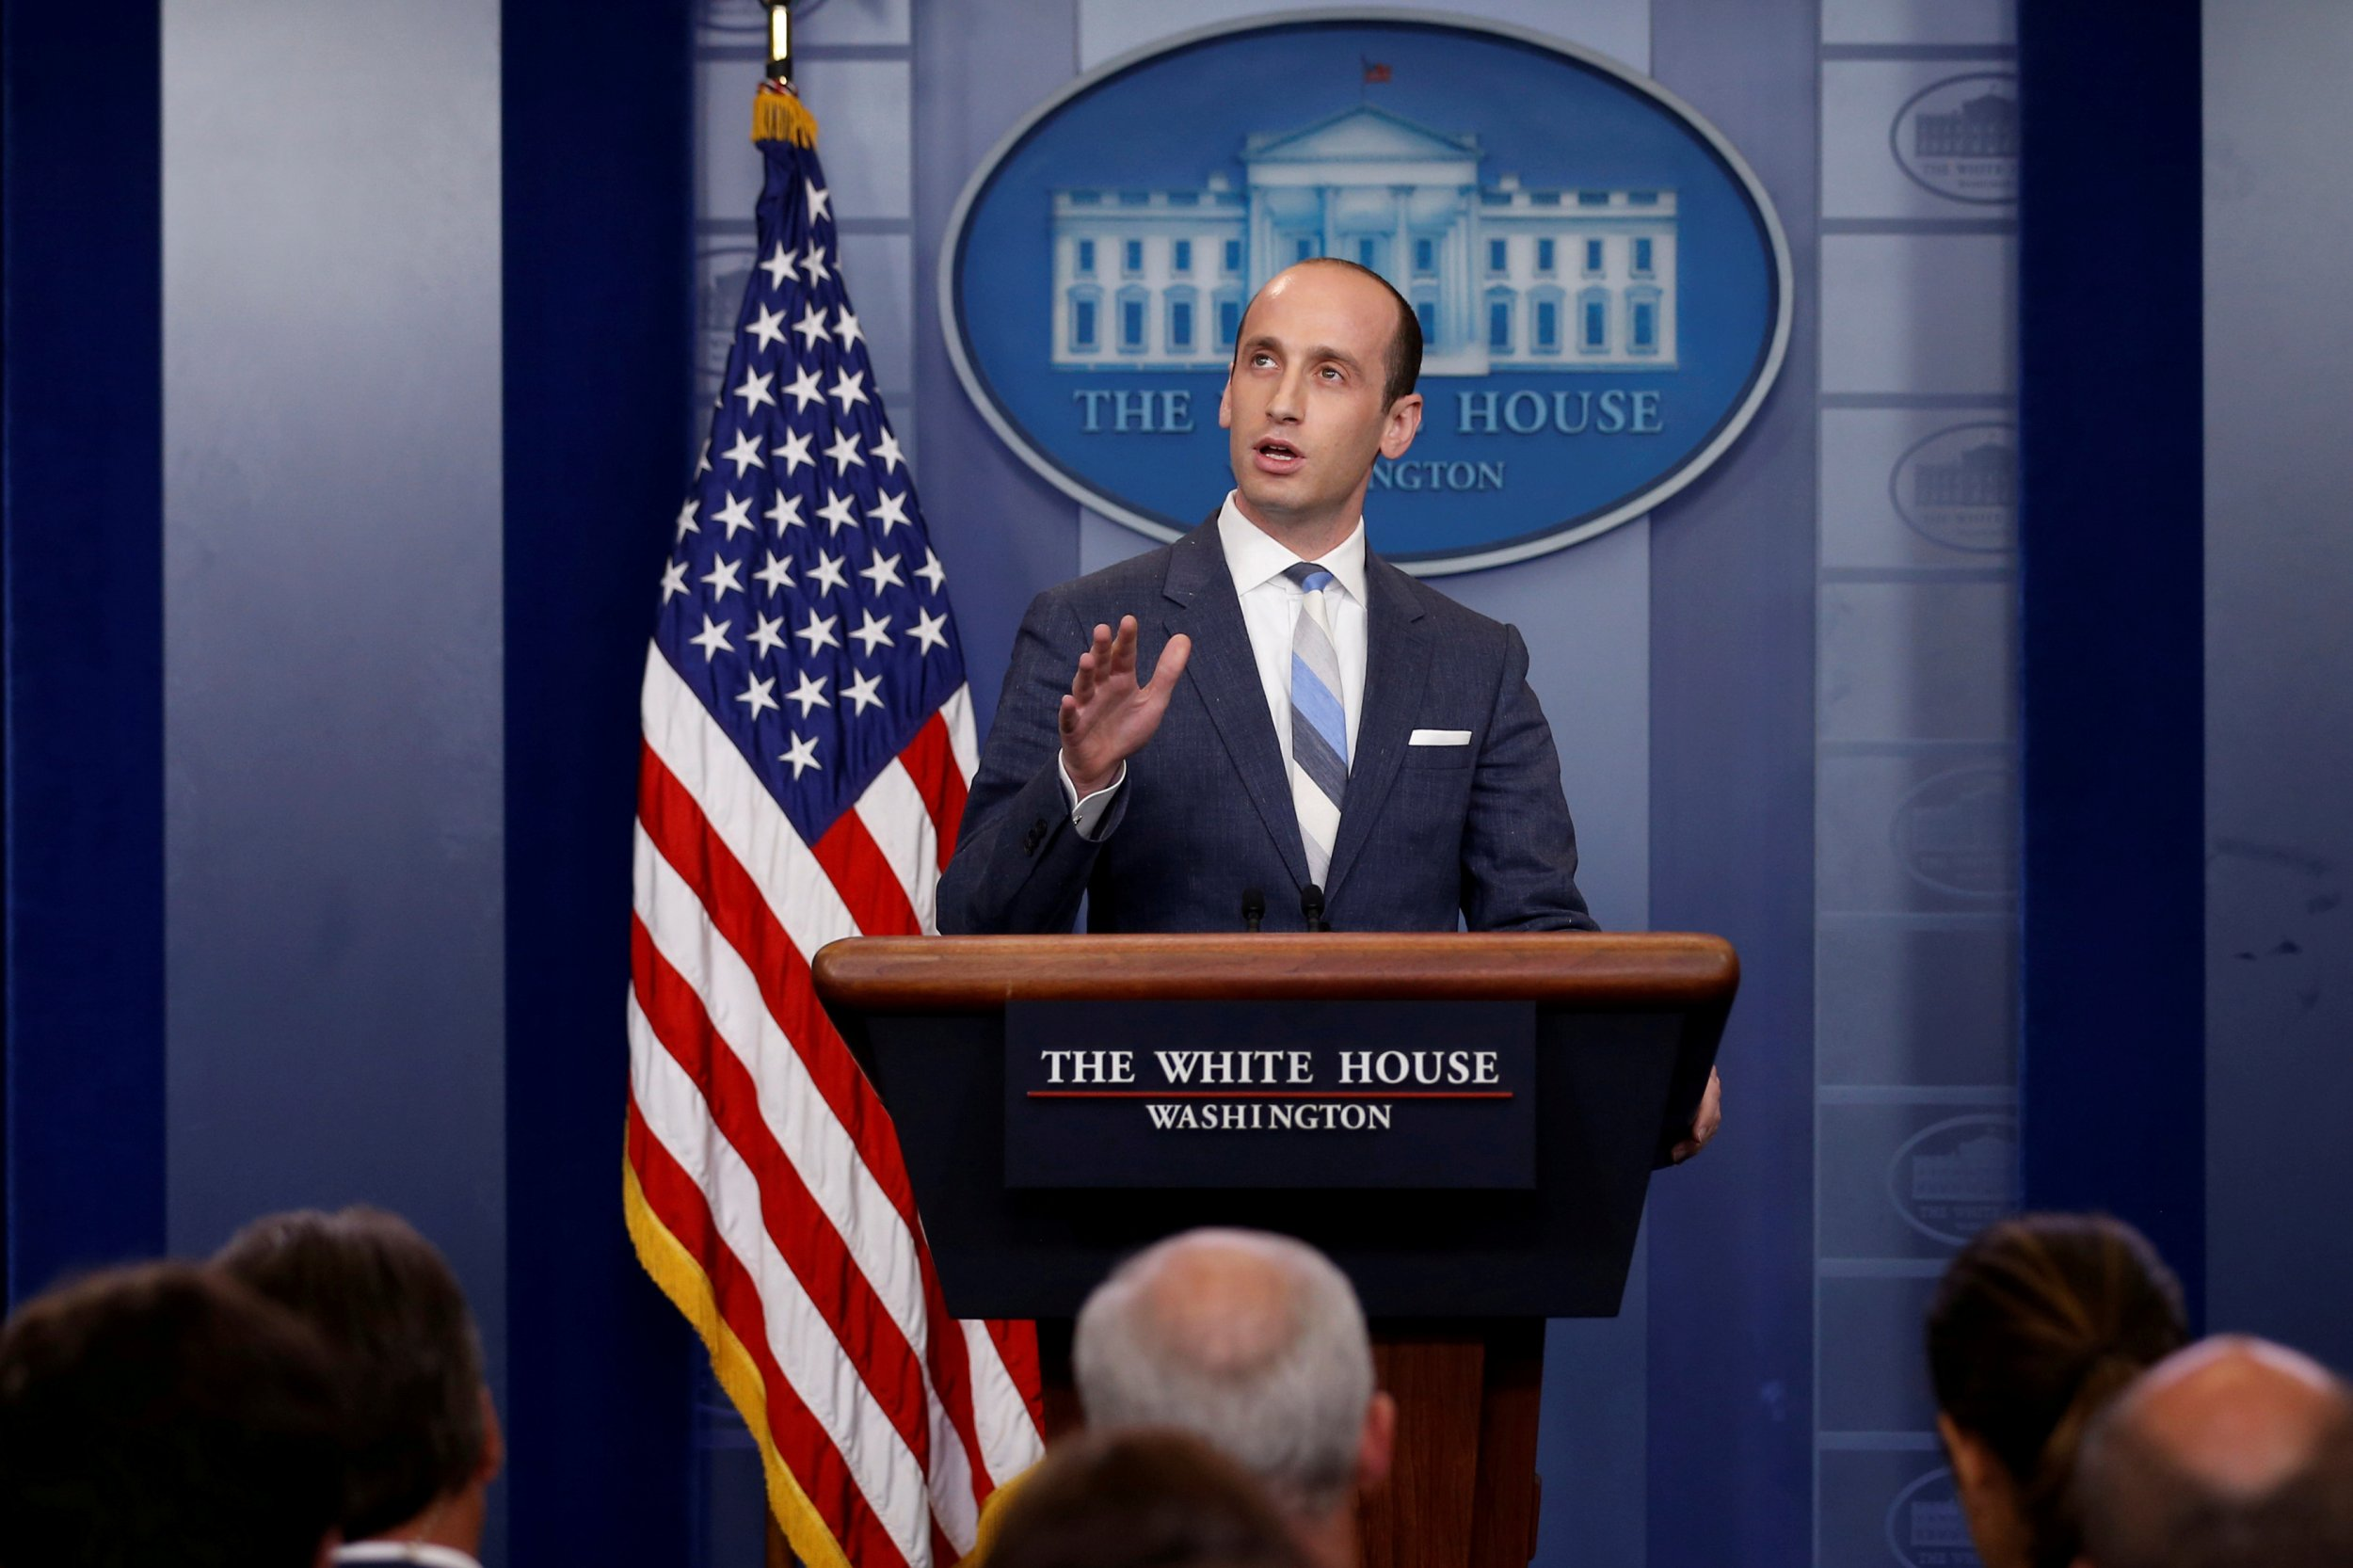 Stephen Miller on U.S. Immigration Policy